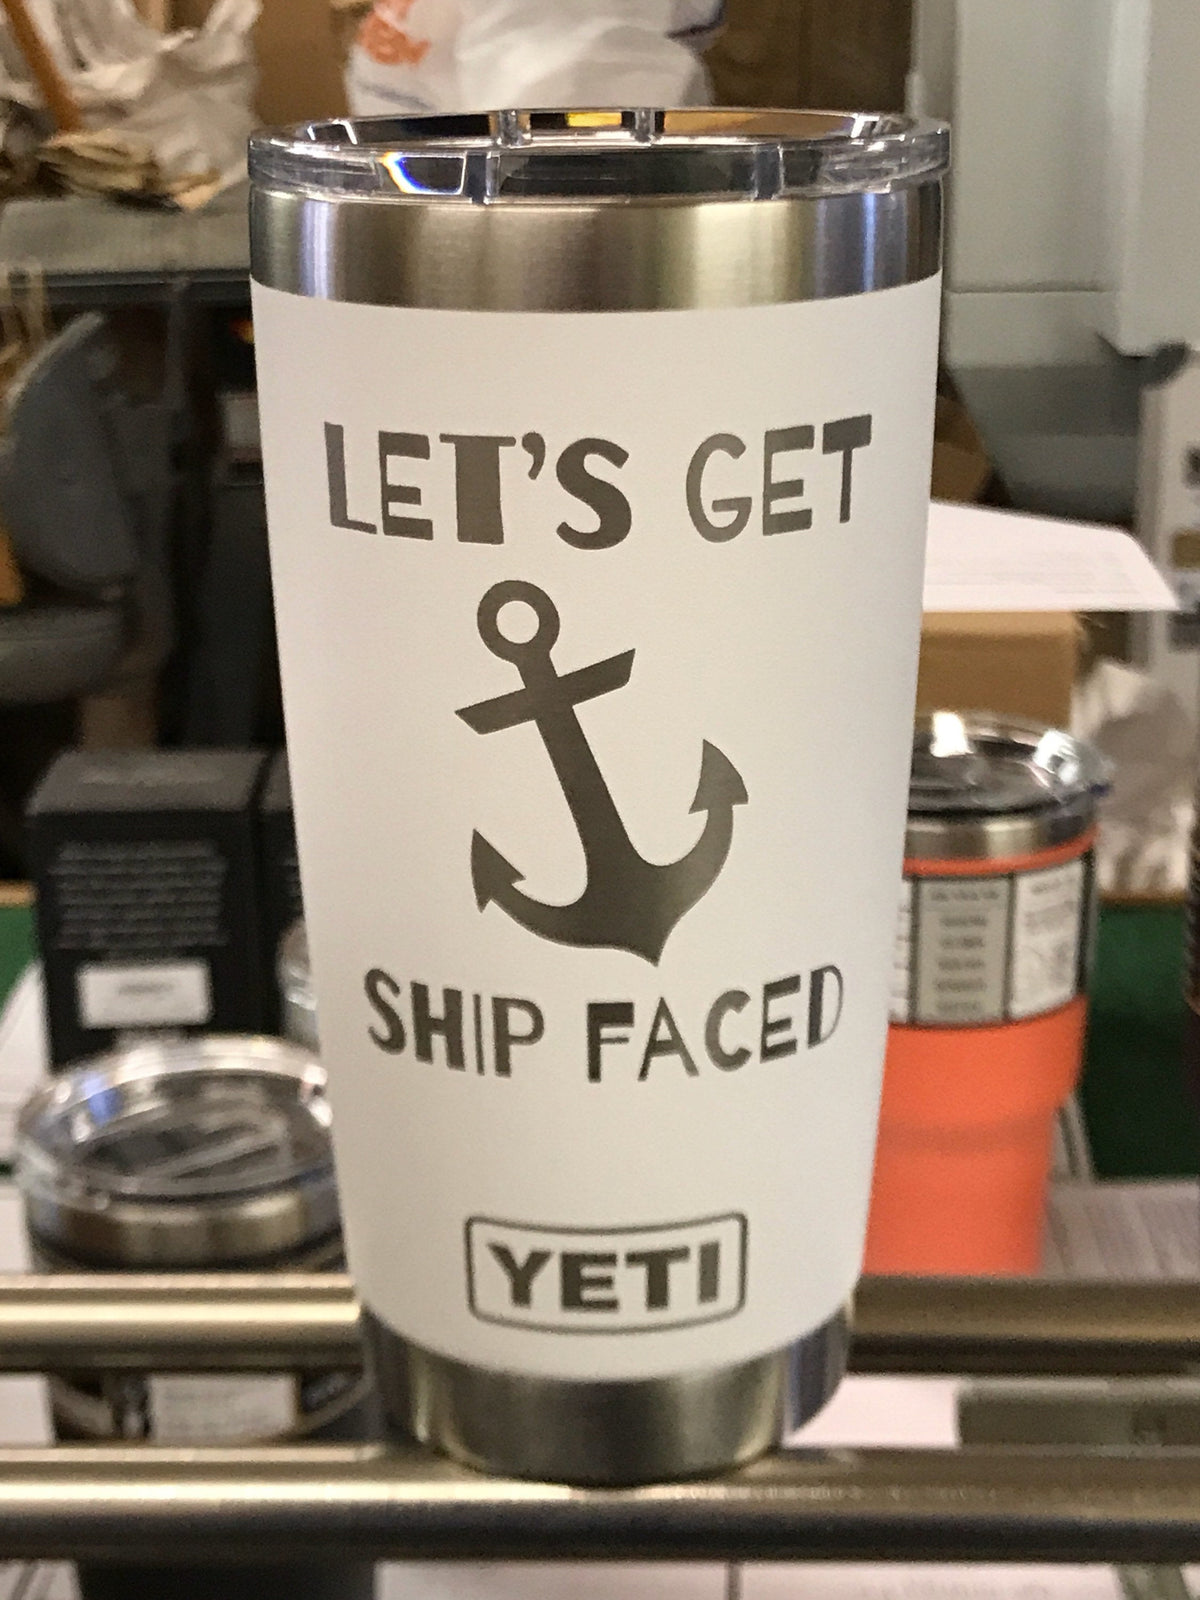 Laser Engraved Authentic Yeti Rambler - Let's GET SHIP FACED